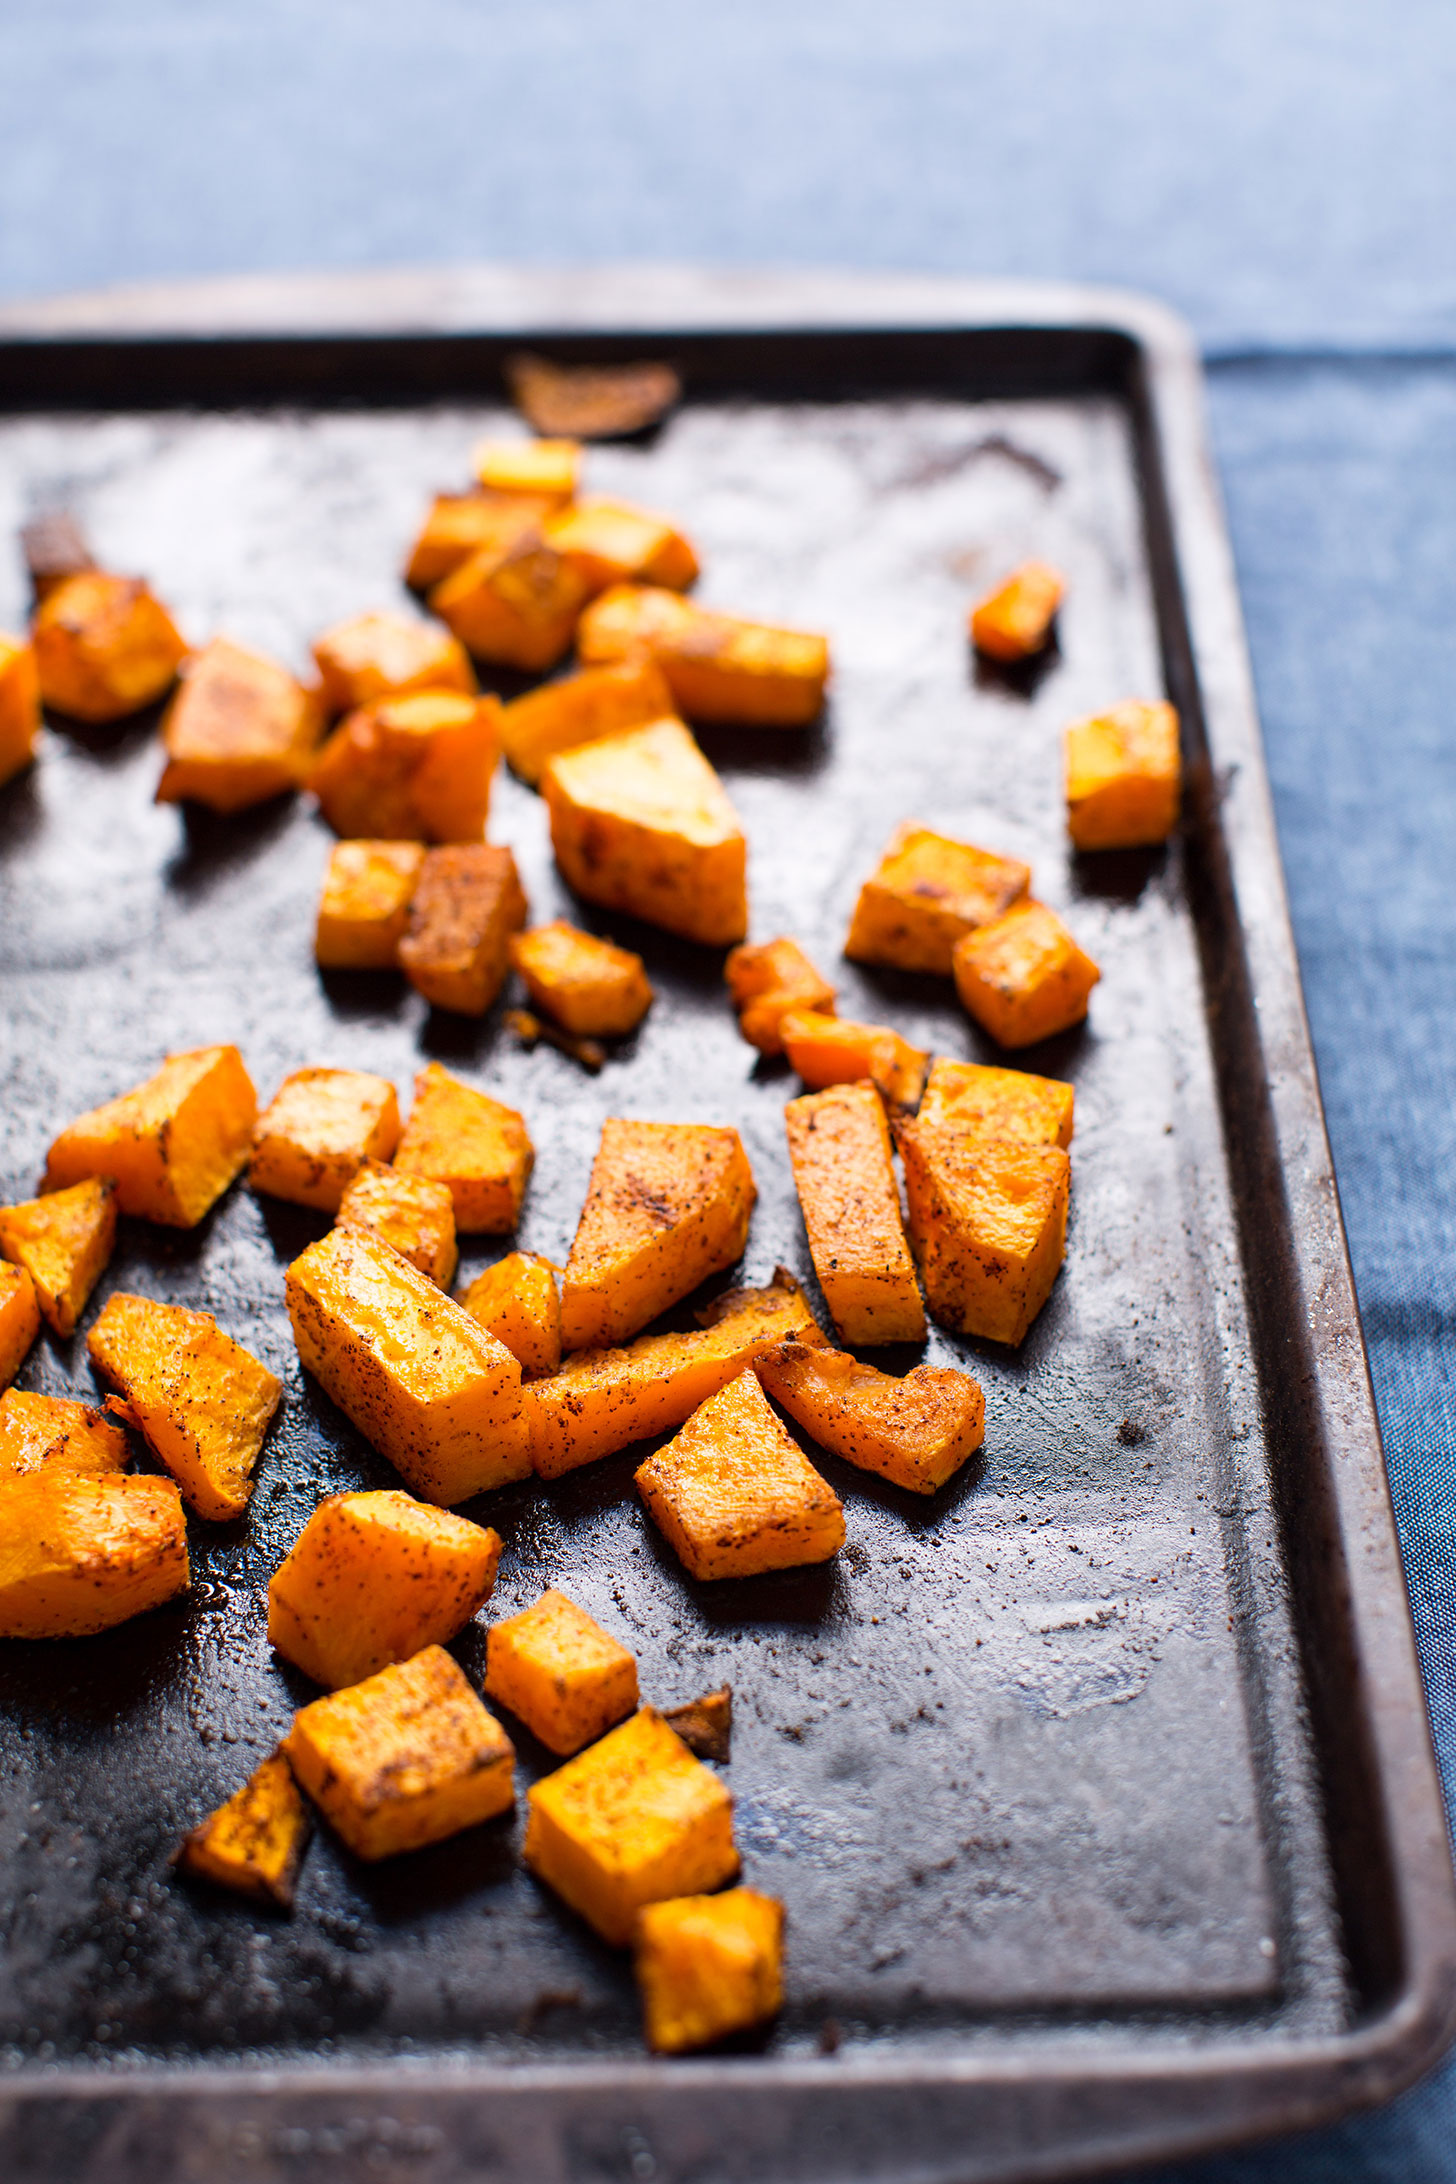 Baking sheet with freshly roasted spiced butternut squash for easy vegan tacos